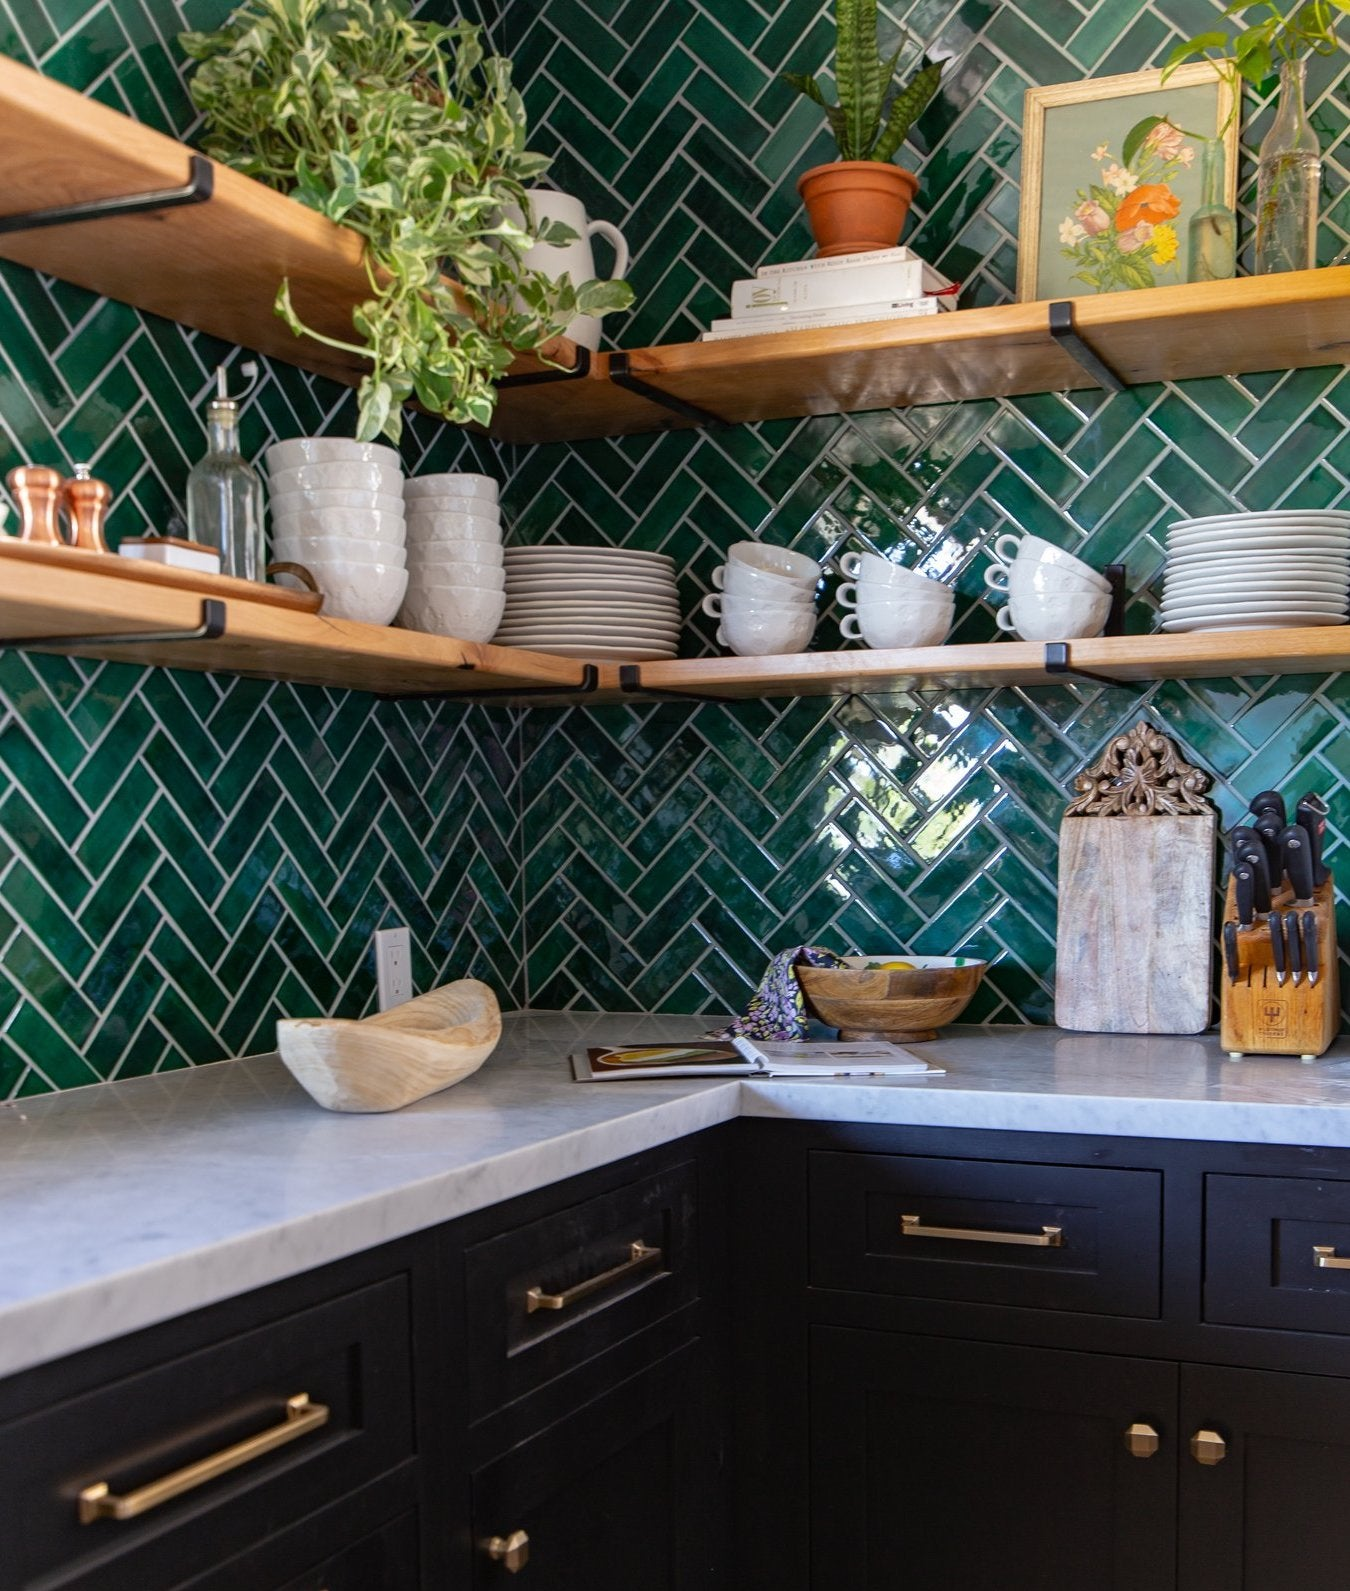 Green Ceramic Herringbone Kitchen Backsplash